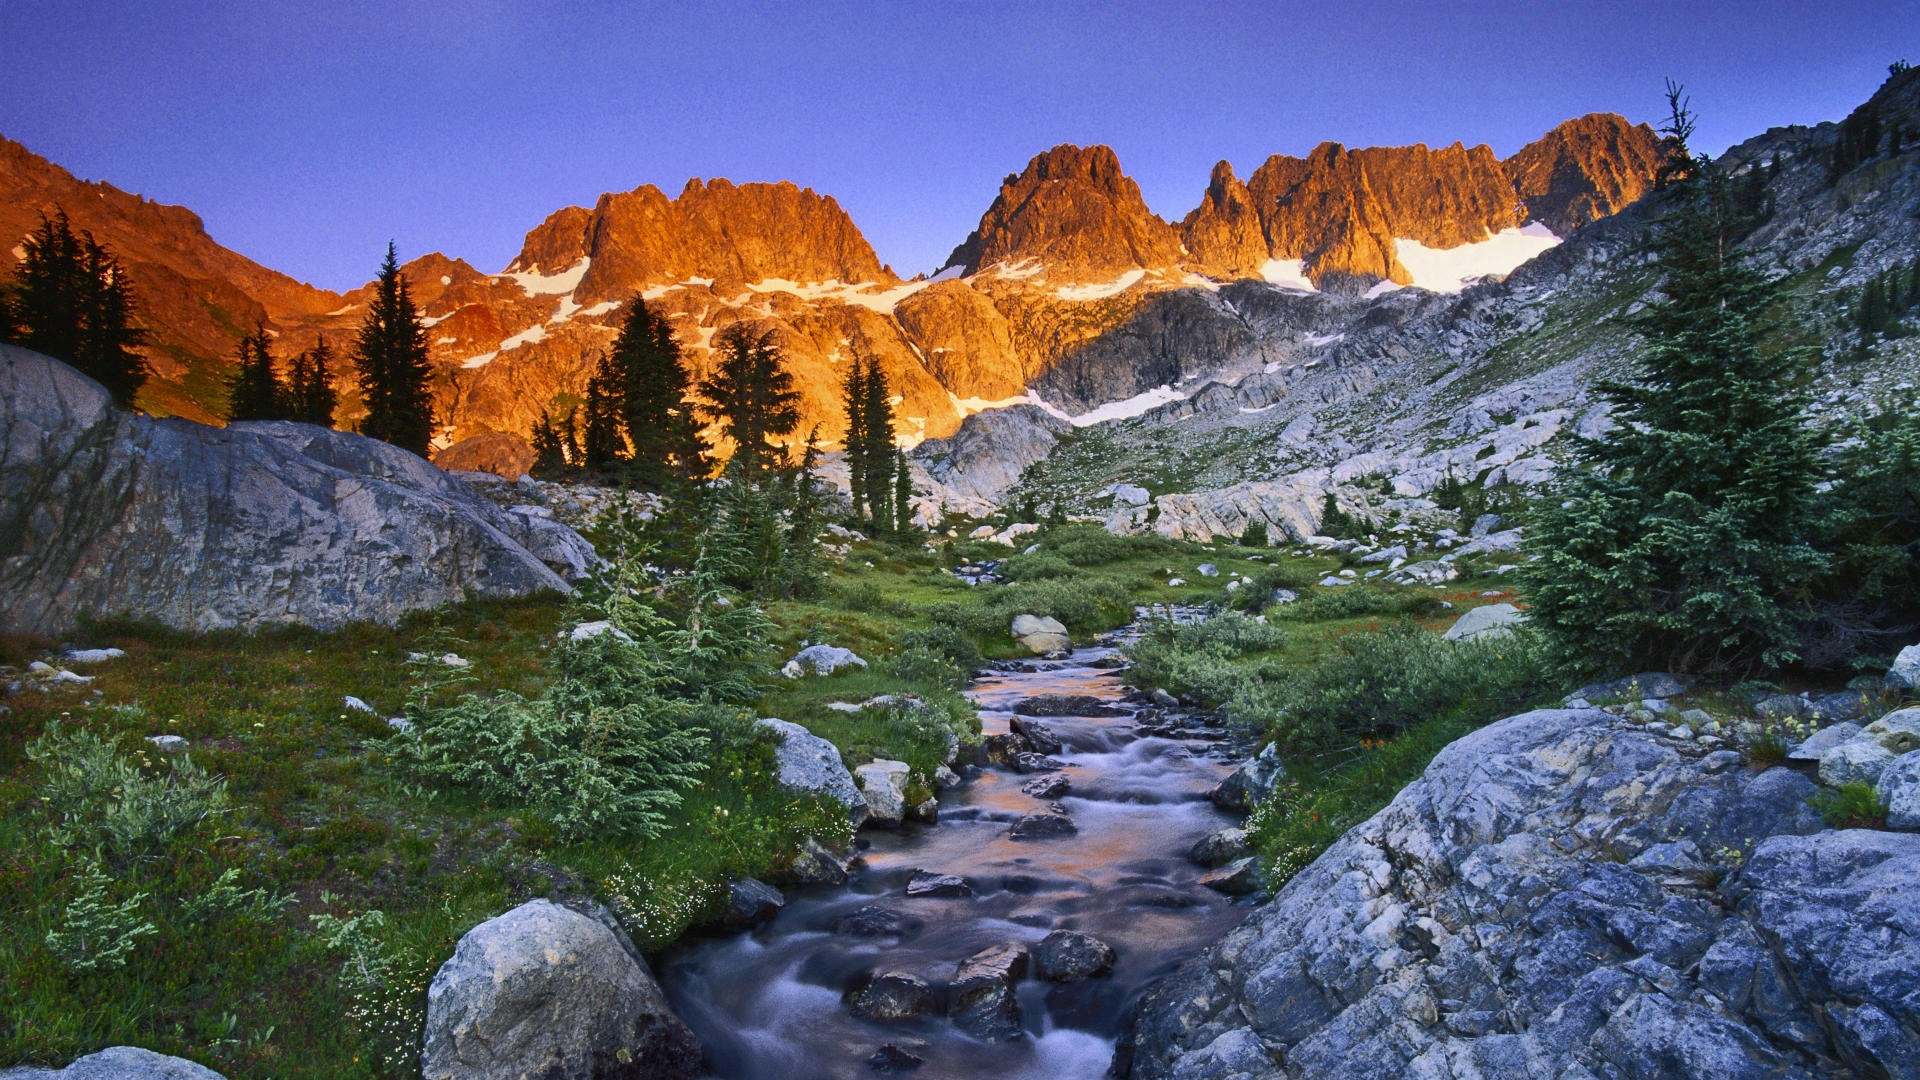 Sierra nevada wallpapers high quality download free - Nevada wallpaper hd ...